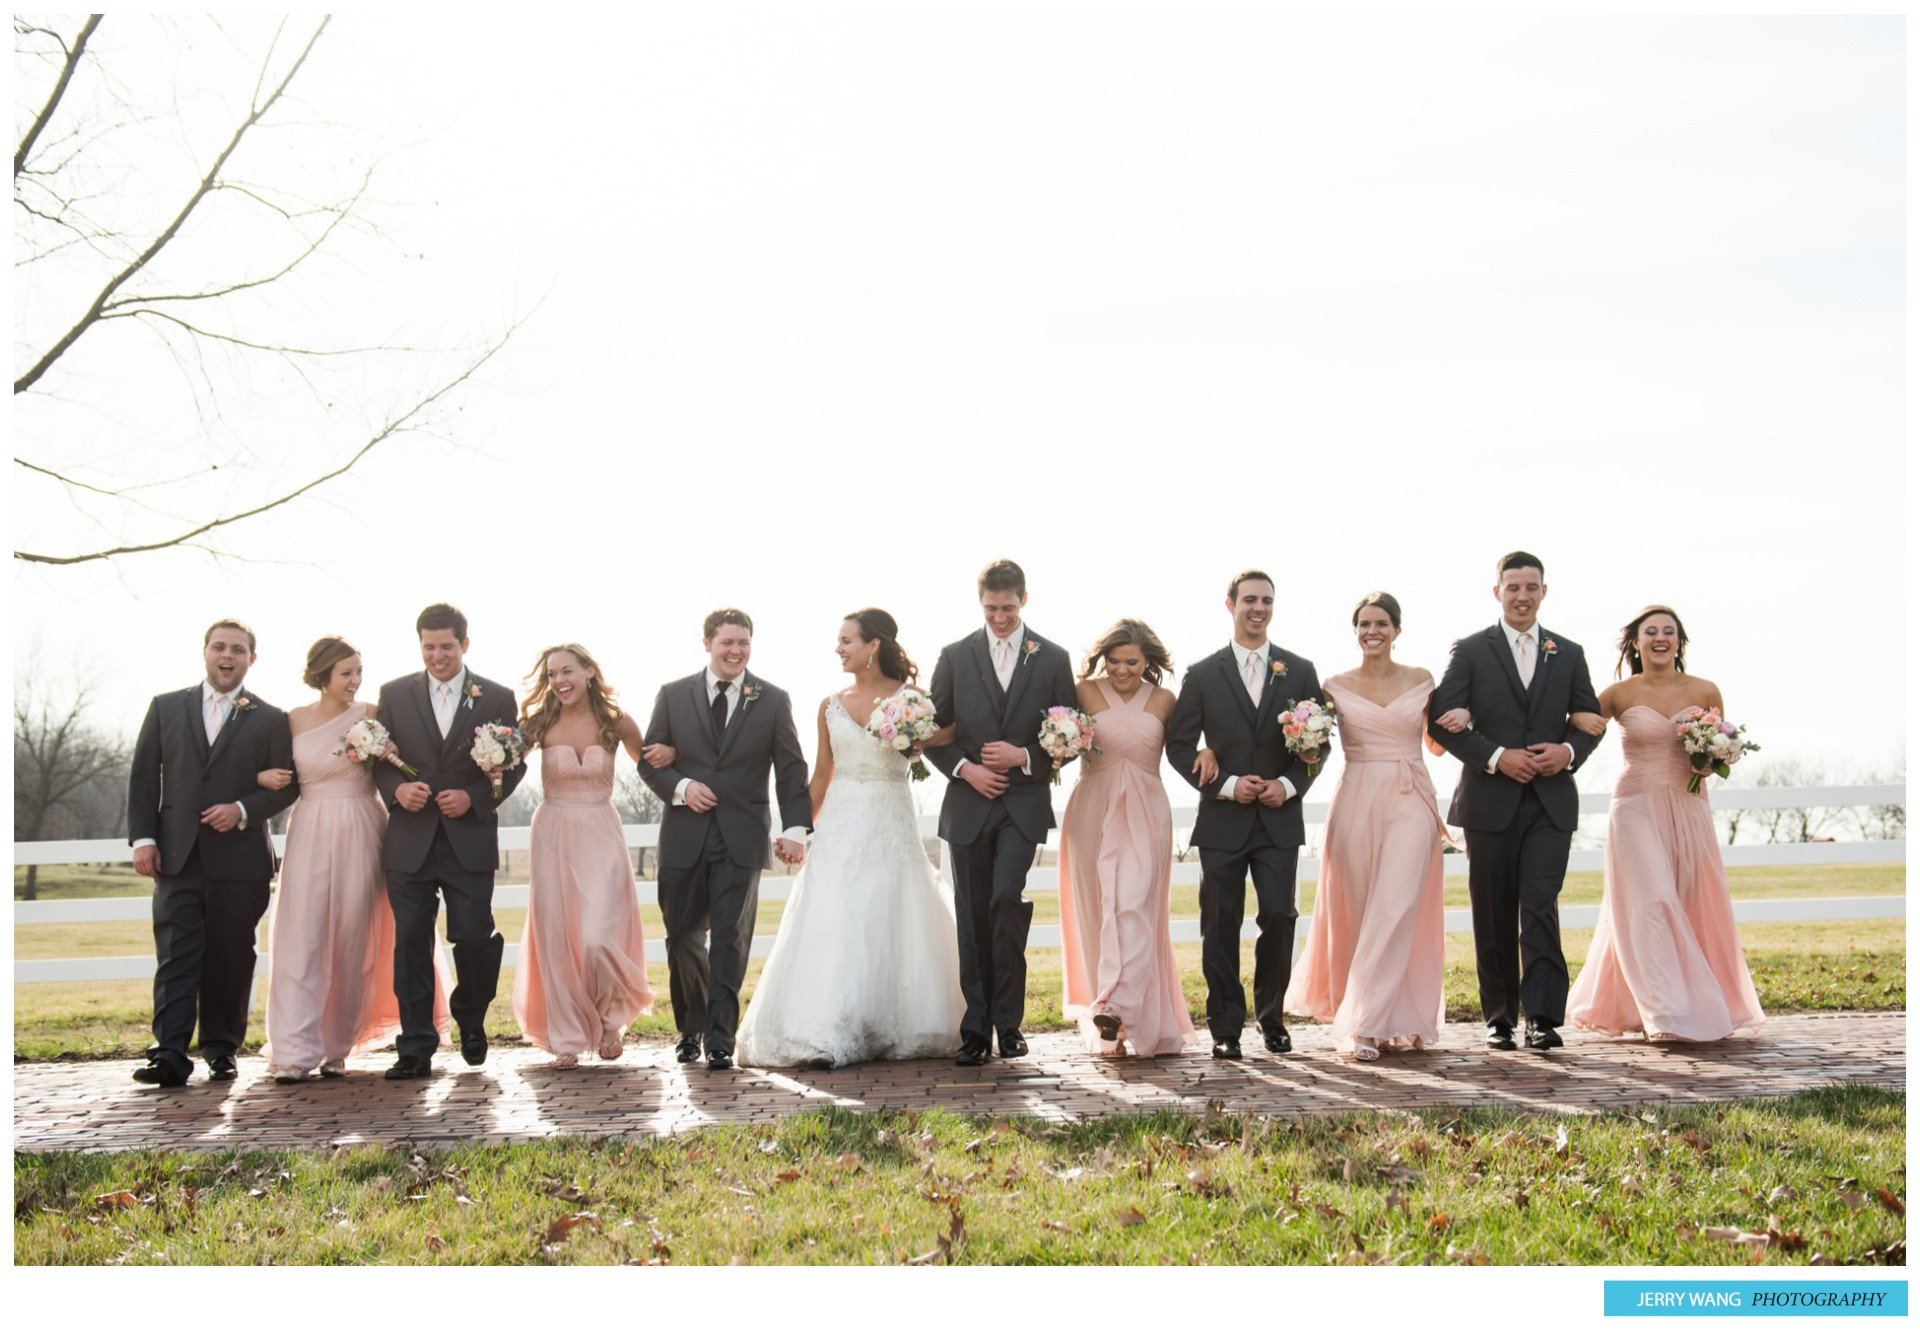 K&J_Mildale Farm Wedding_Bonner Springs_029